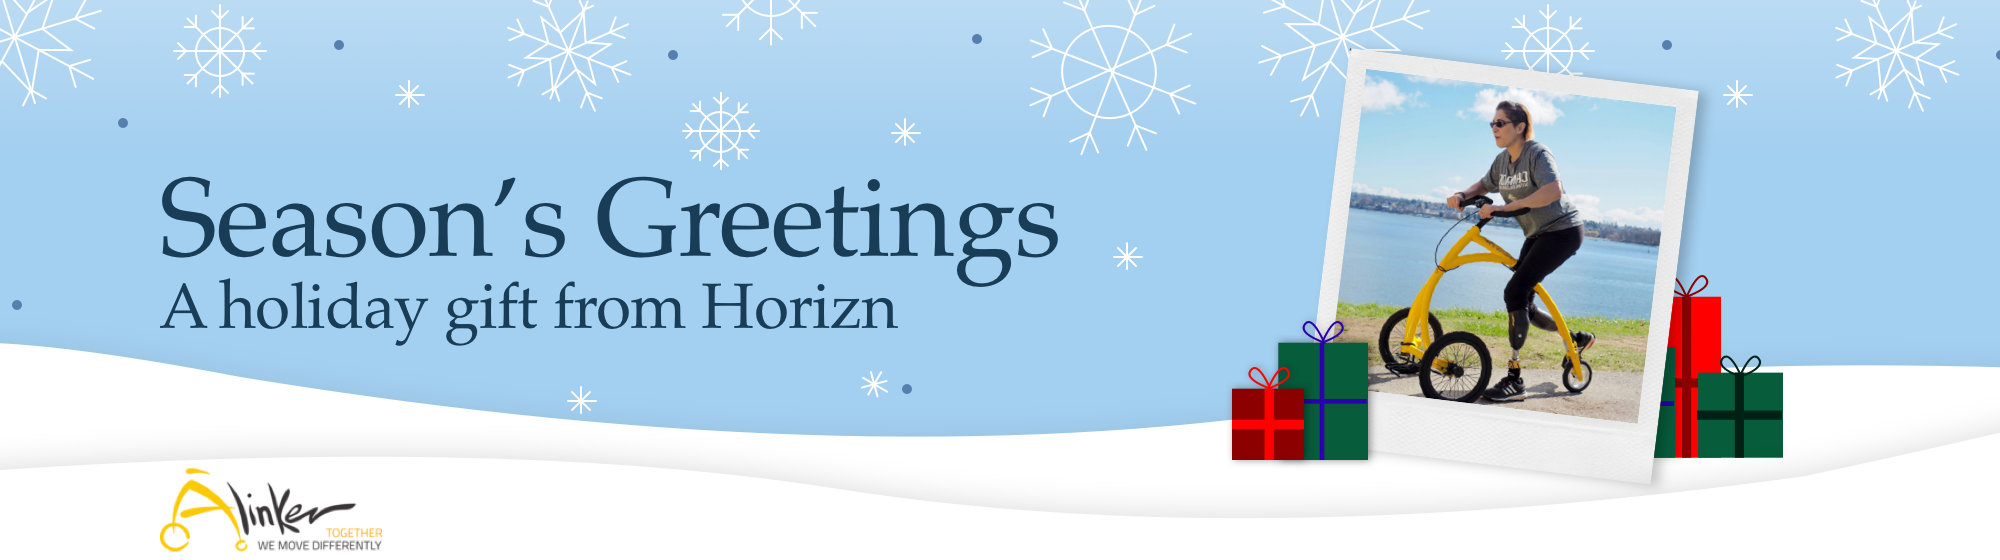 Season's Greetings, A holiday gift from Horizn